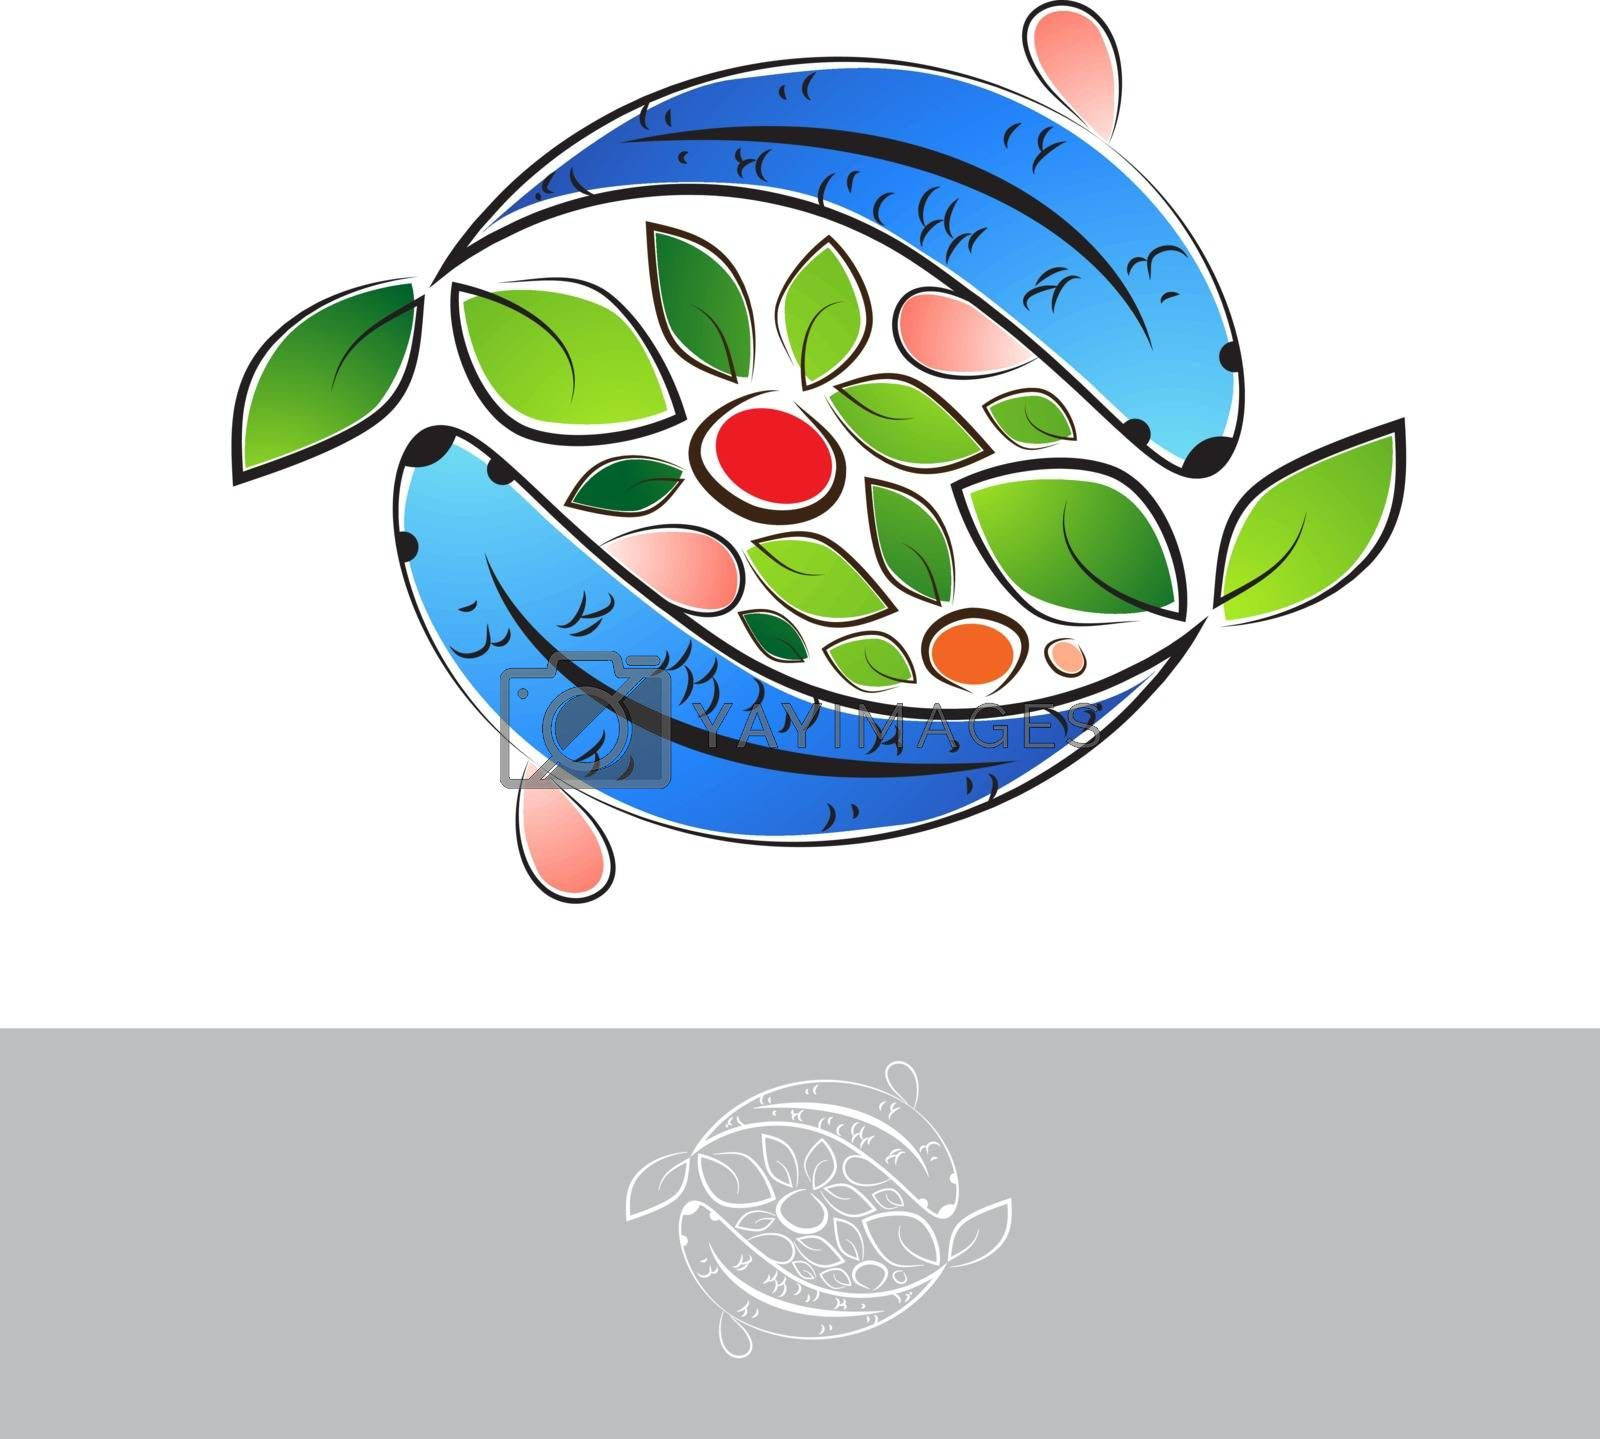 Aquaponic Logo With Fish and Vegetables